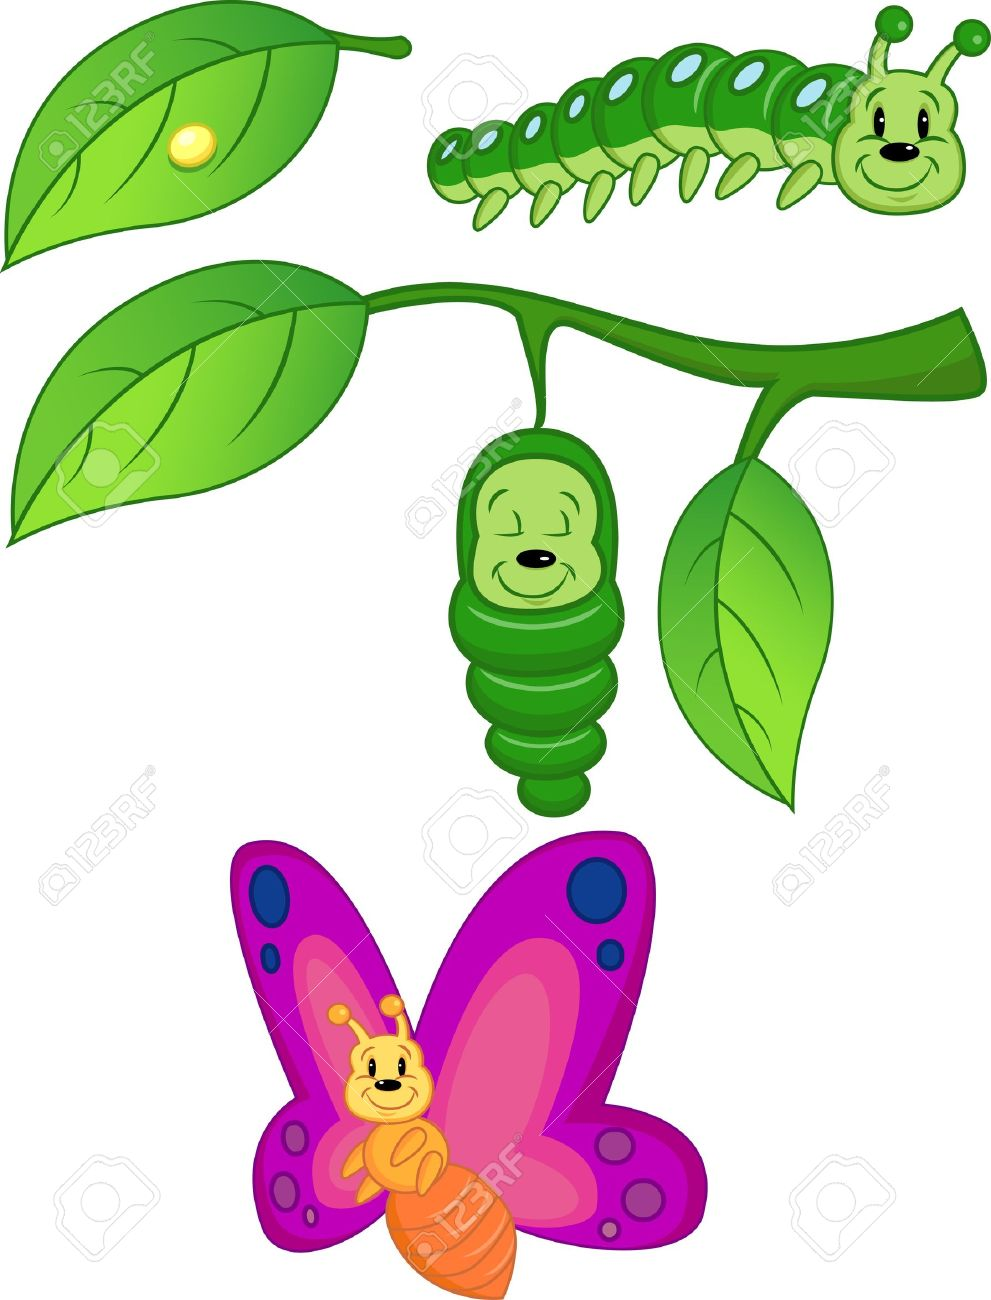 Butterfly Metamorphosis Royalty Free Cliparts, Vectors, And Stock.